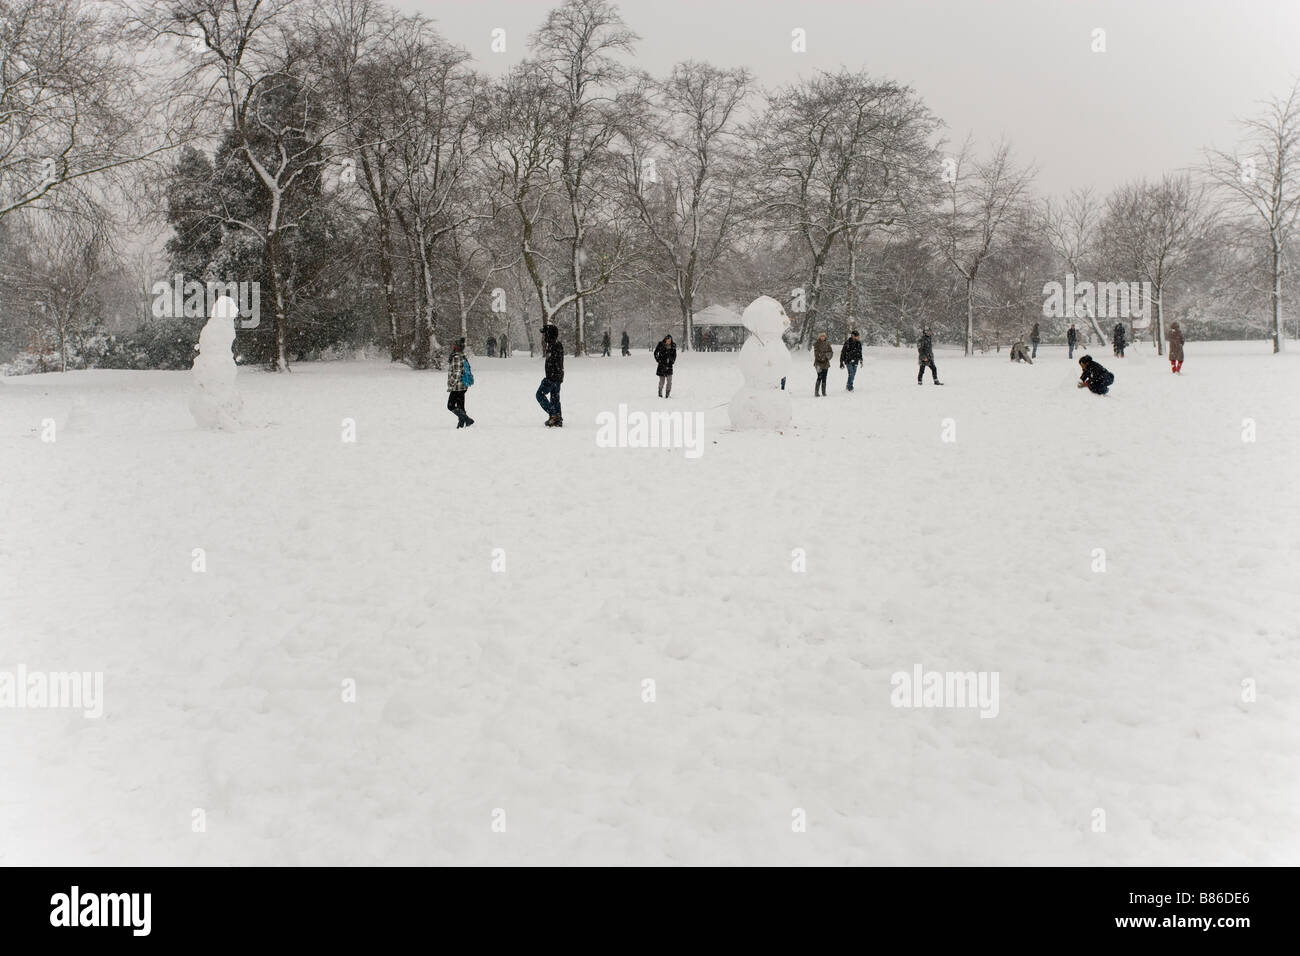 Winter background car cgi background snow snow men uk - Stock Image